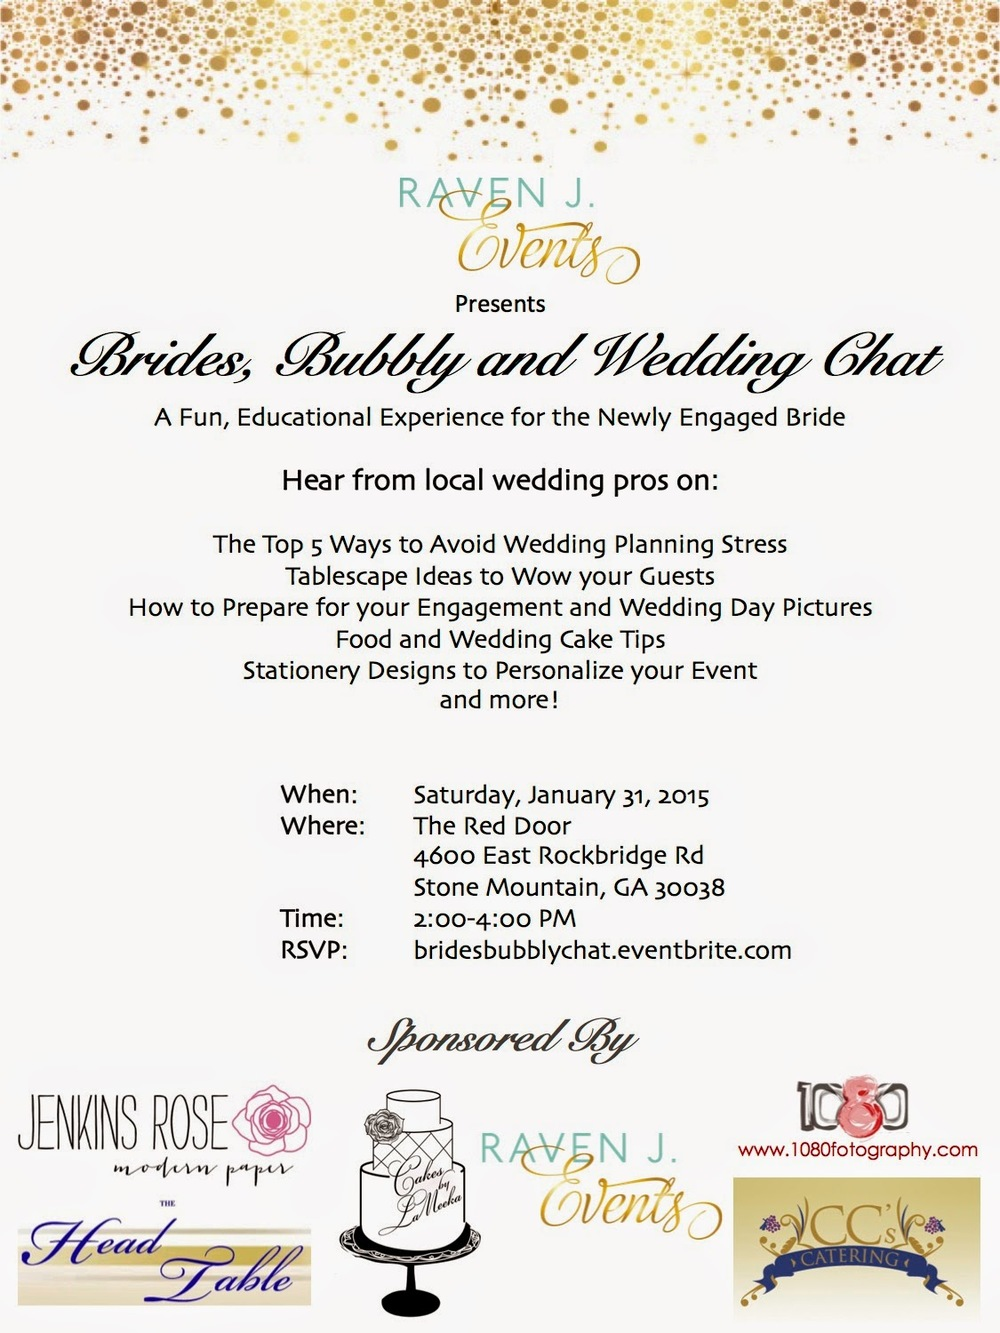 brides bubbly and wedding chat raven j events